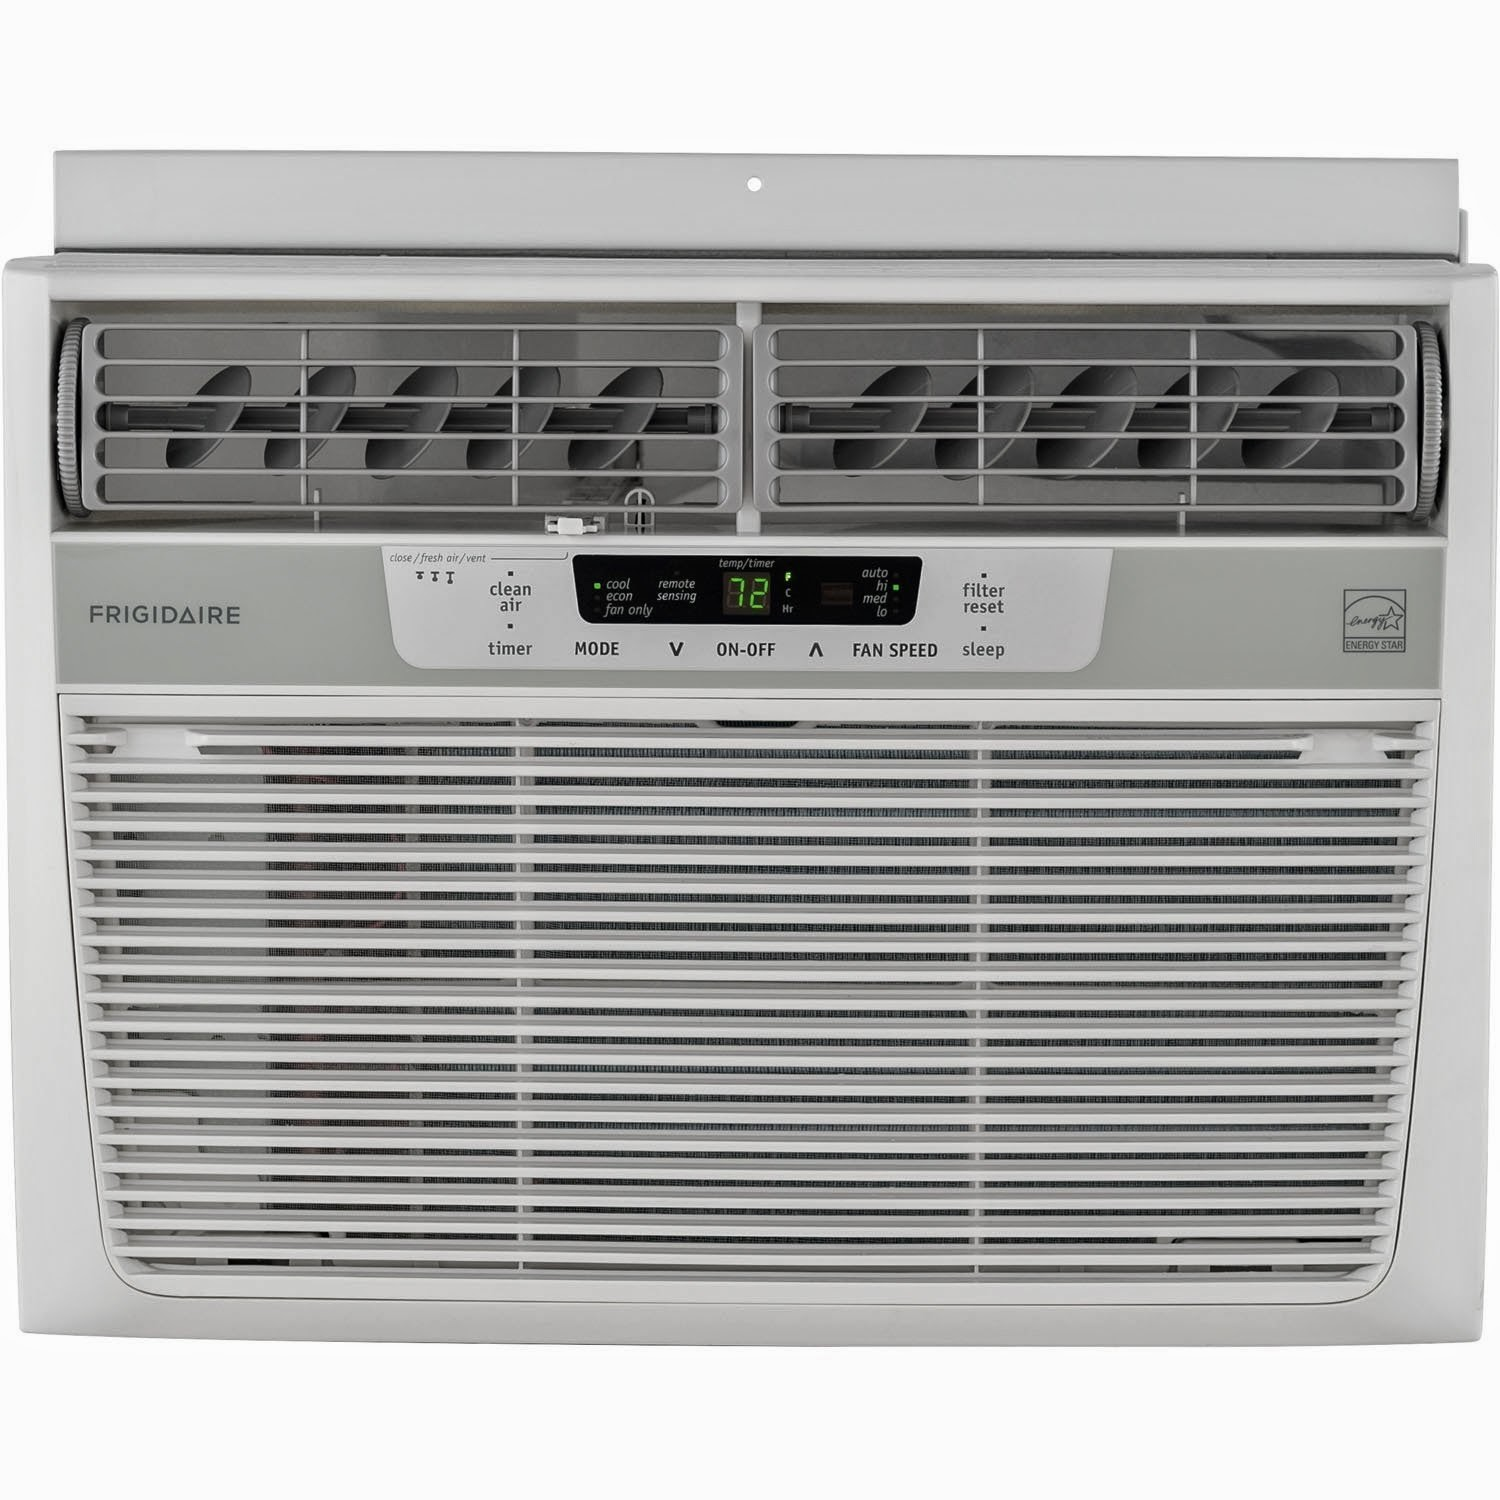 Frigidaire Energy Star 12,000 BTU 115V Window-Mounted Compact Air Conditioner w/ Temperature Sensing Remote Control, FFRE1233Q1